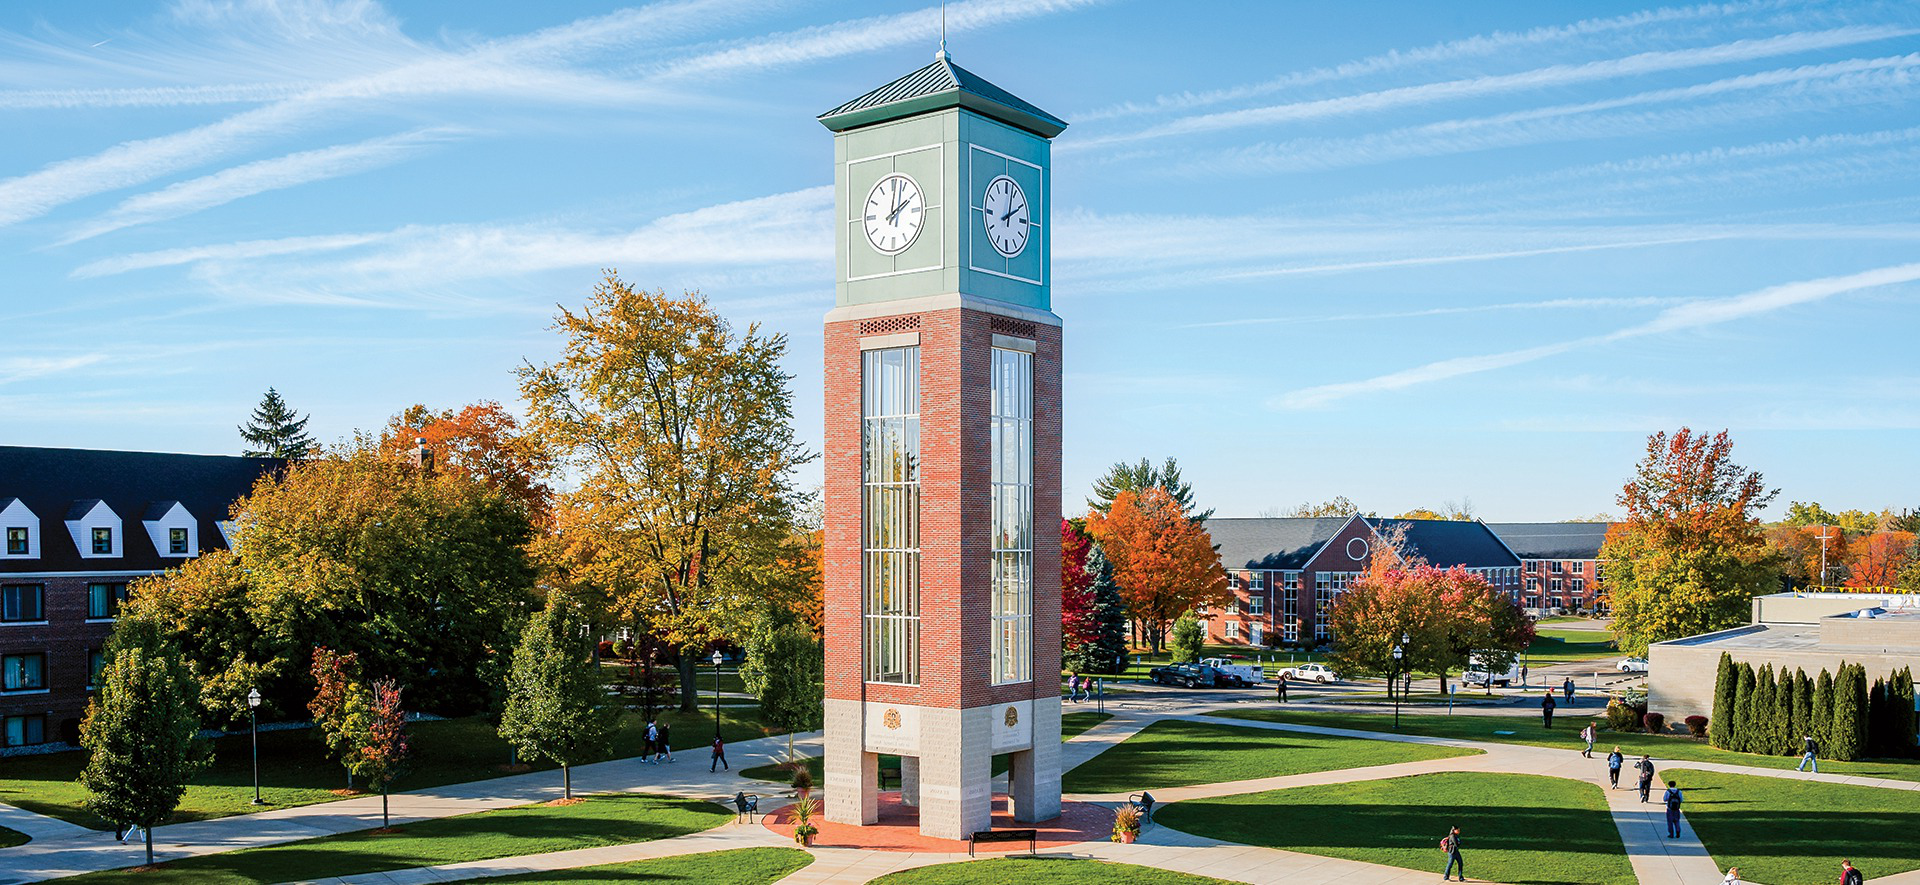 Aerial photo of campus plaza with clocktower